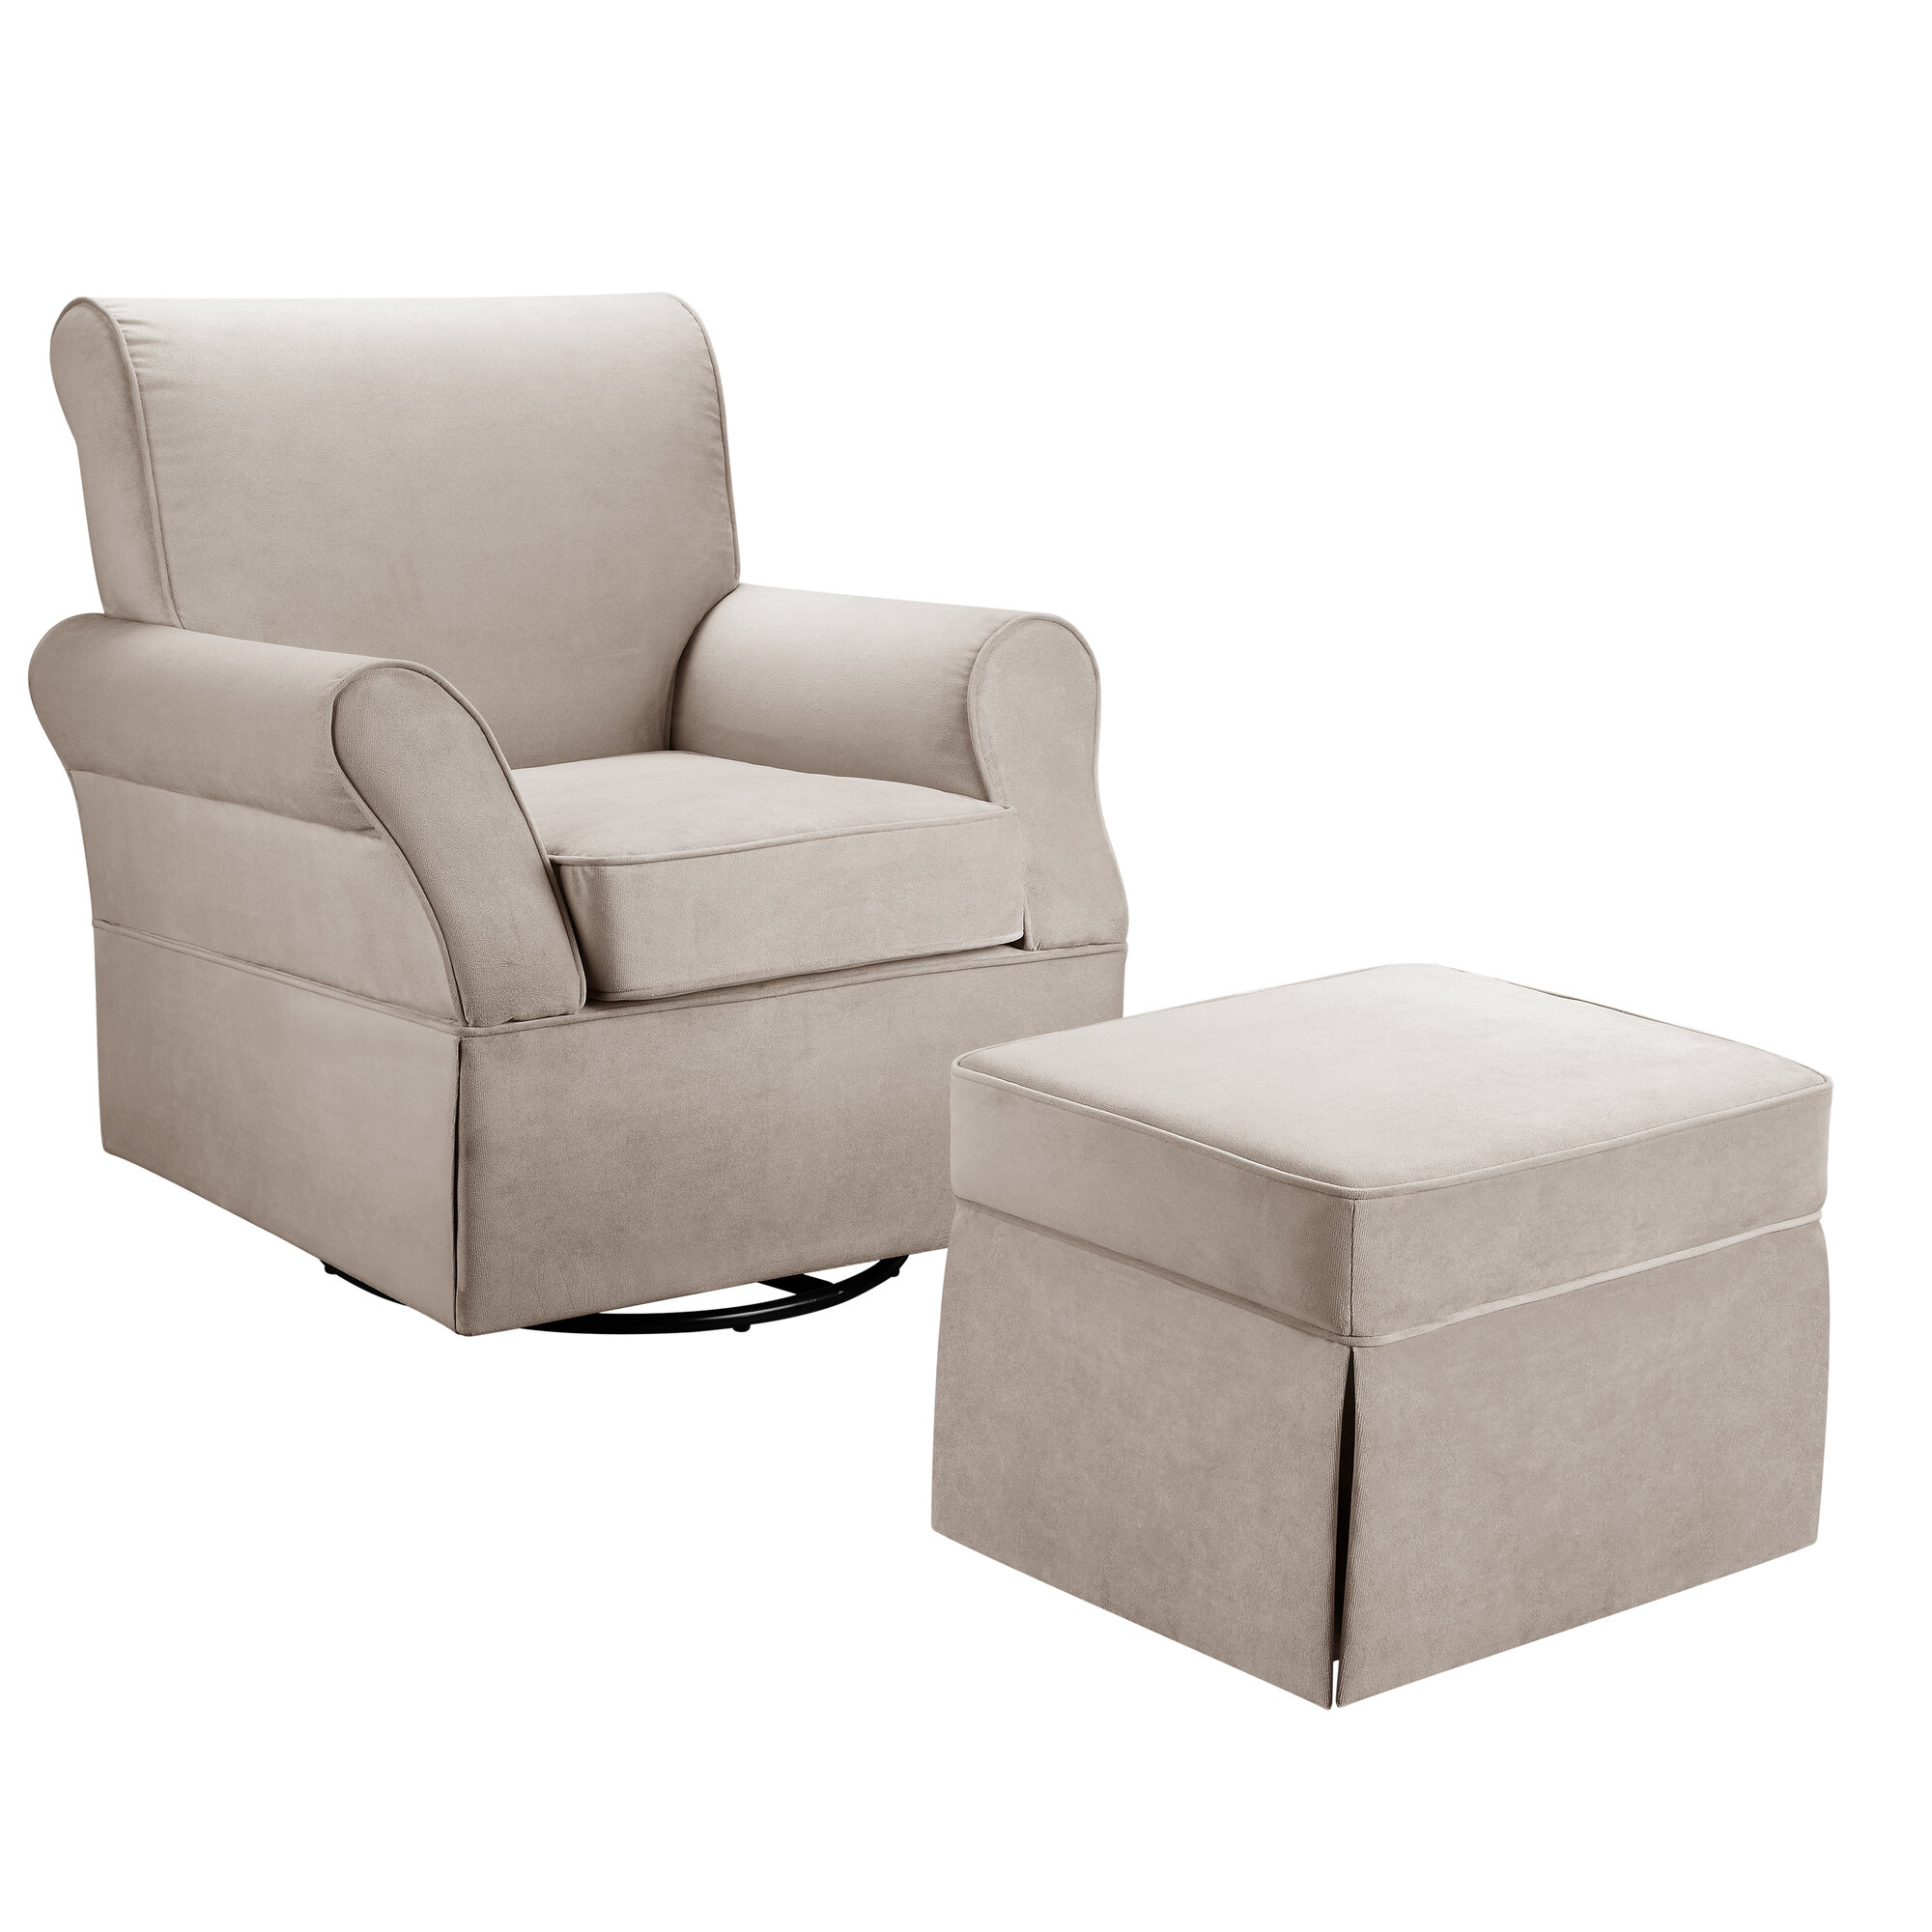 dorel living kelcie swivel glider chair ottoman set ebay. Black Bedroom Furniture Sets. Home Design Ideas